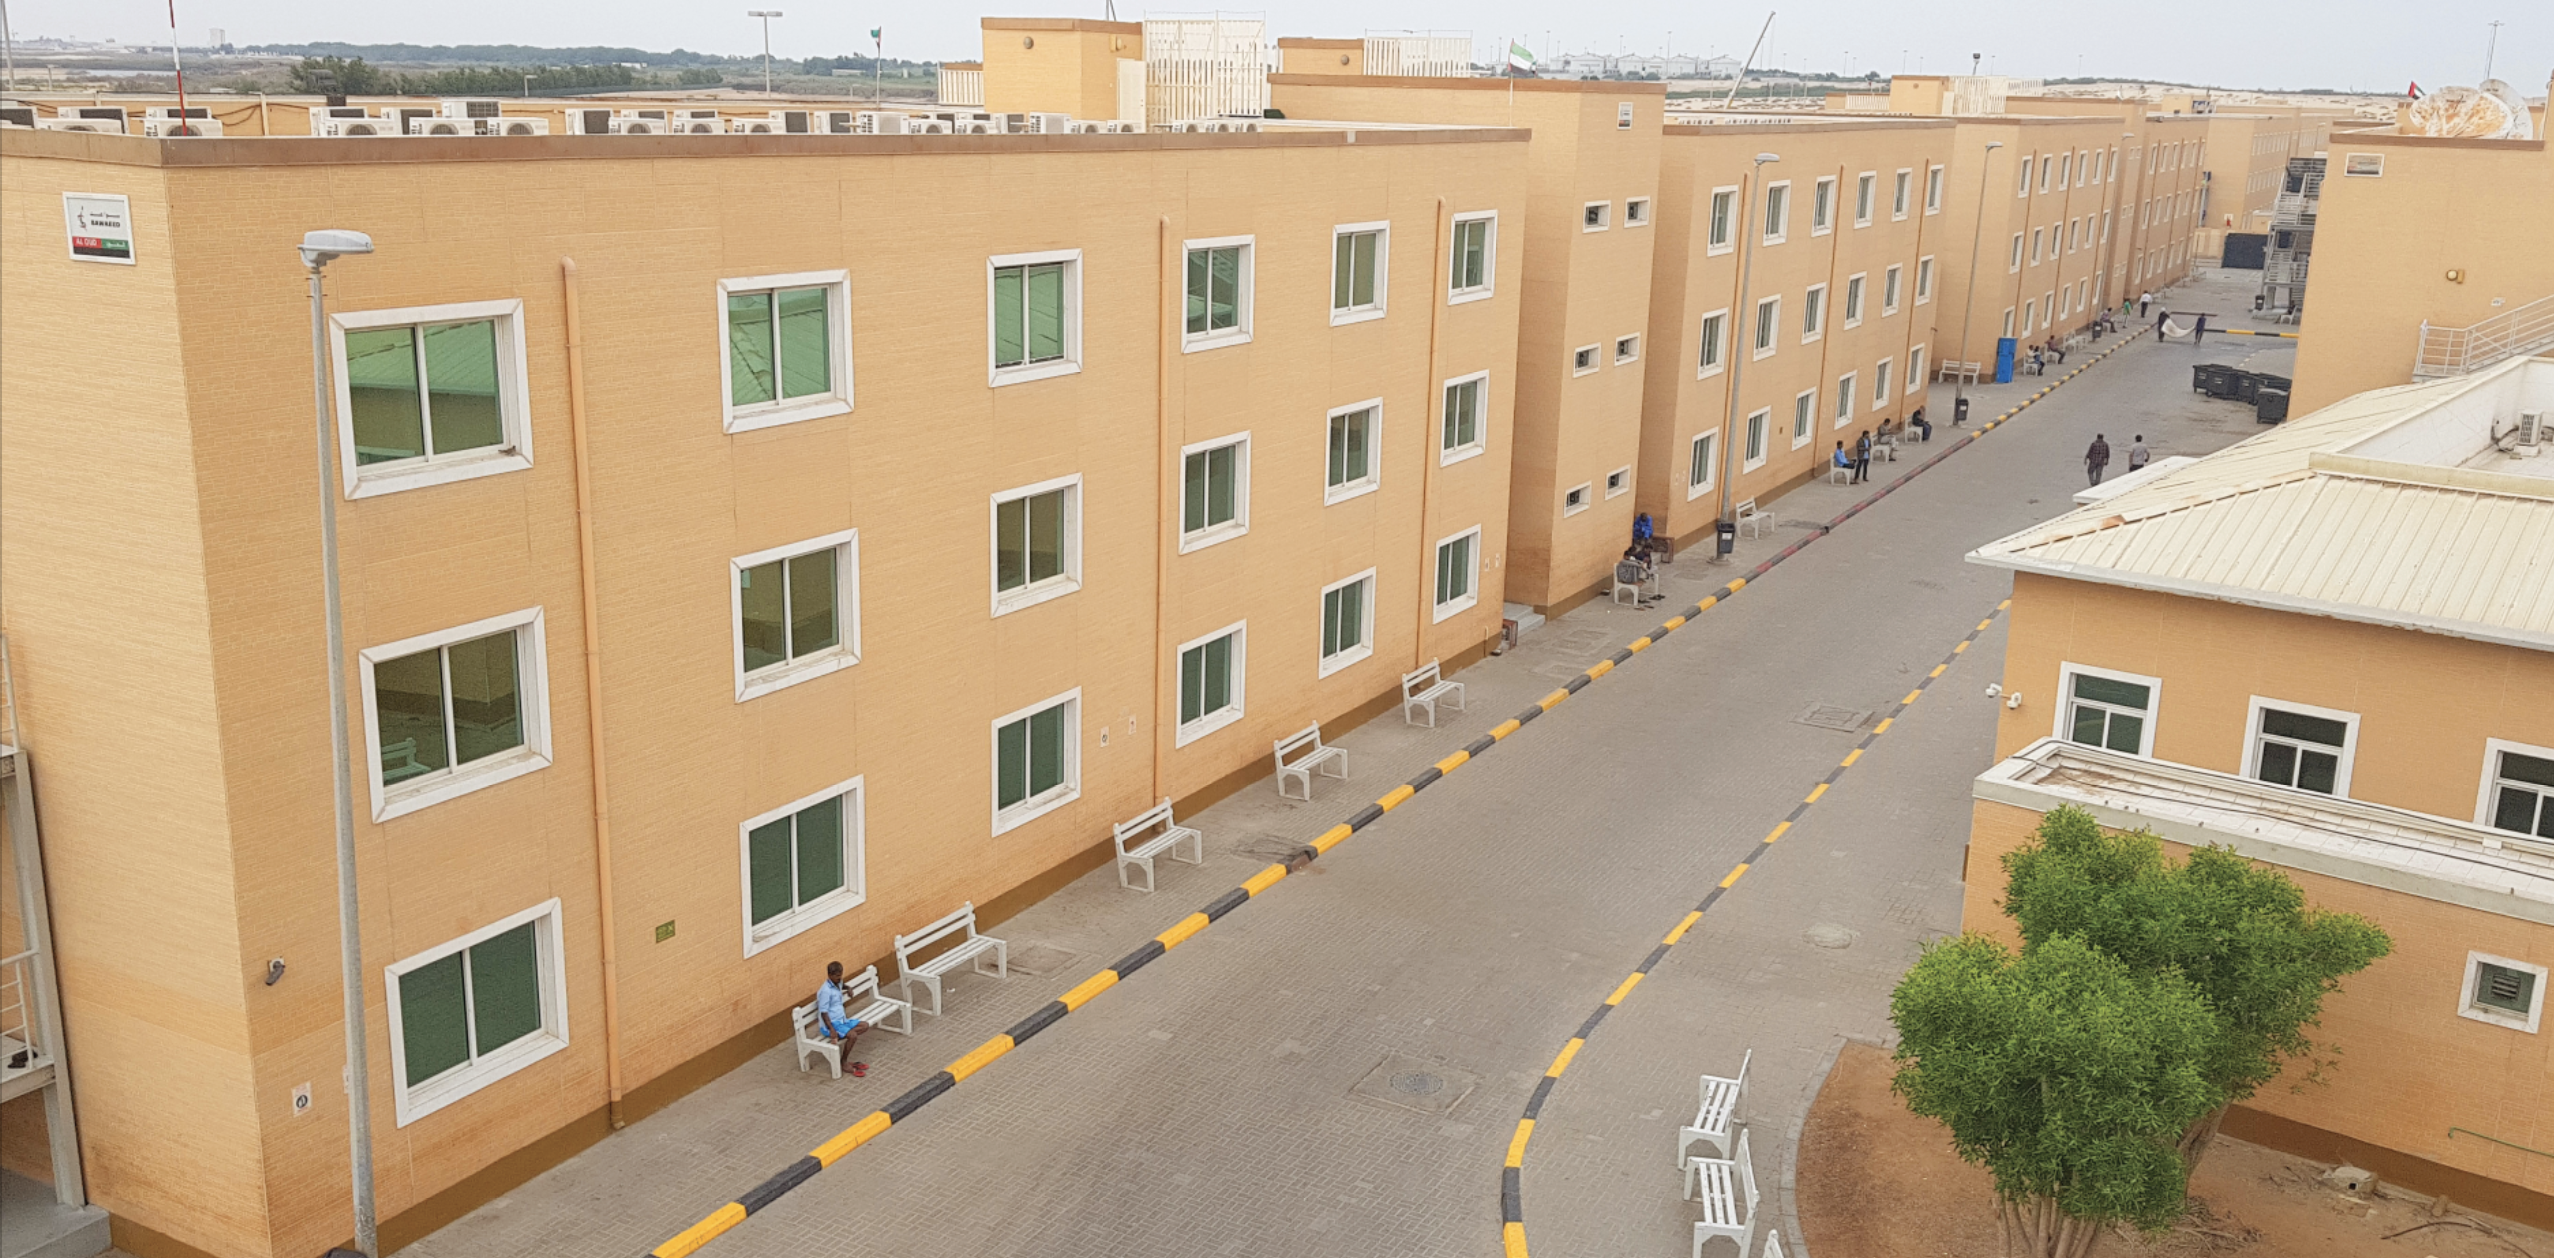 sawaeed residential city - labour camp 1